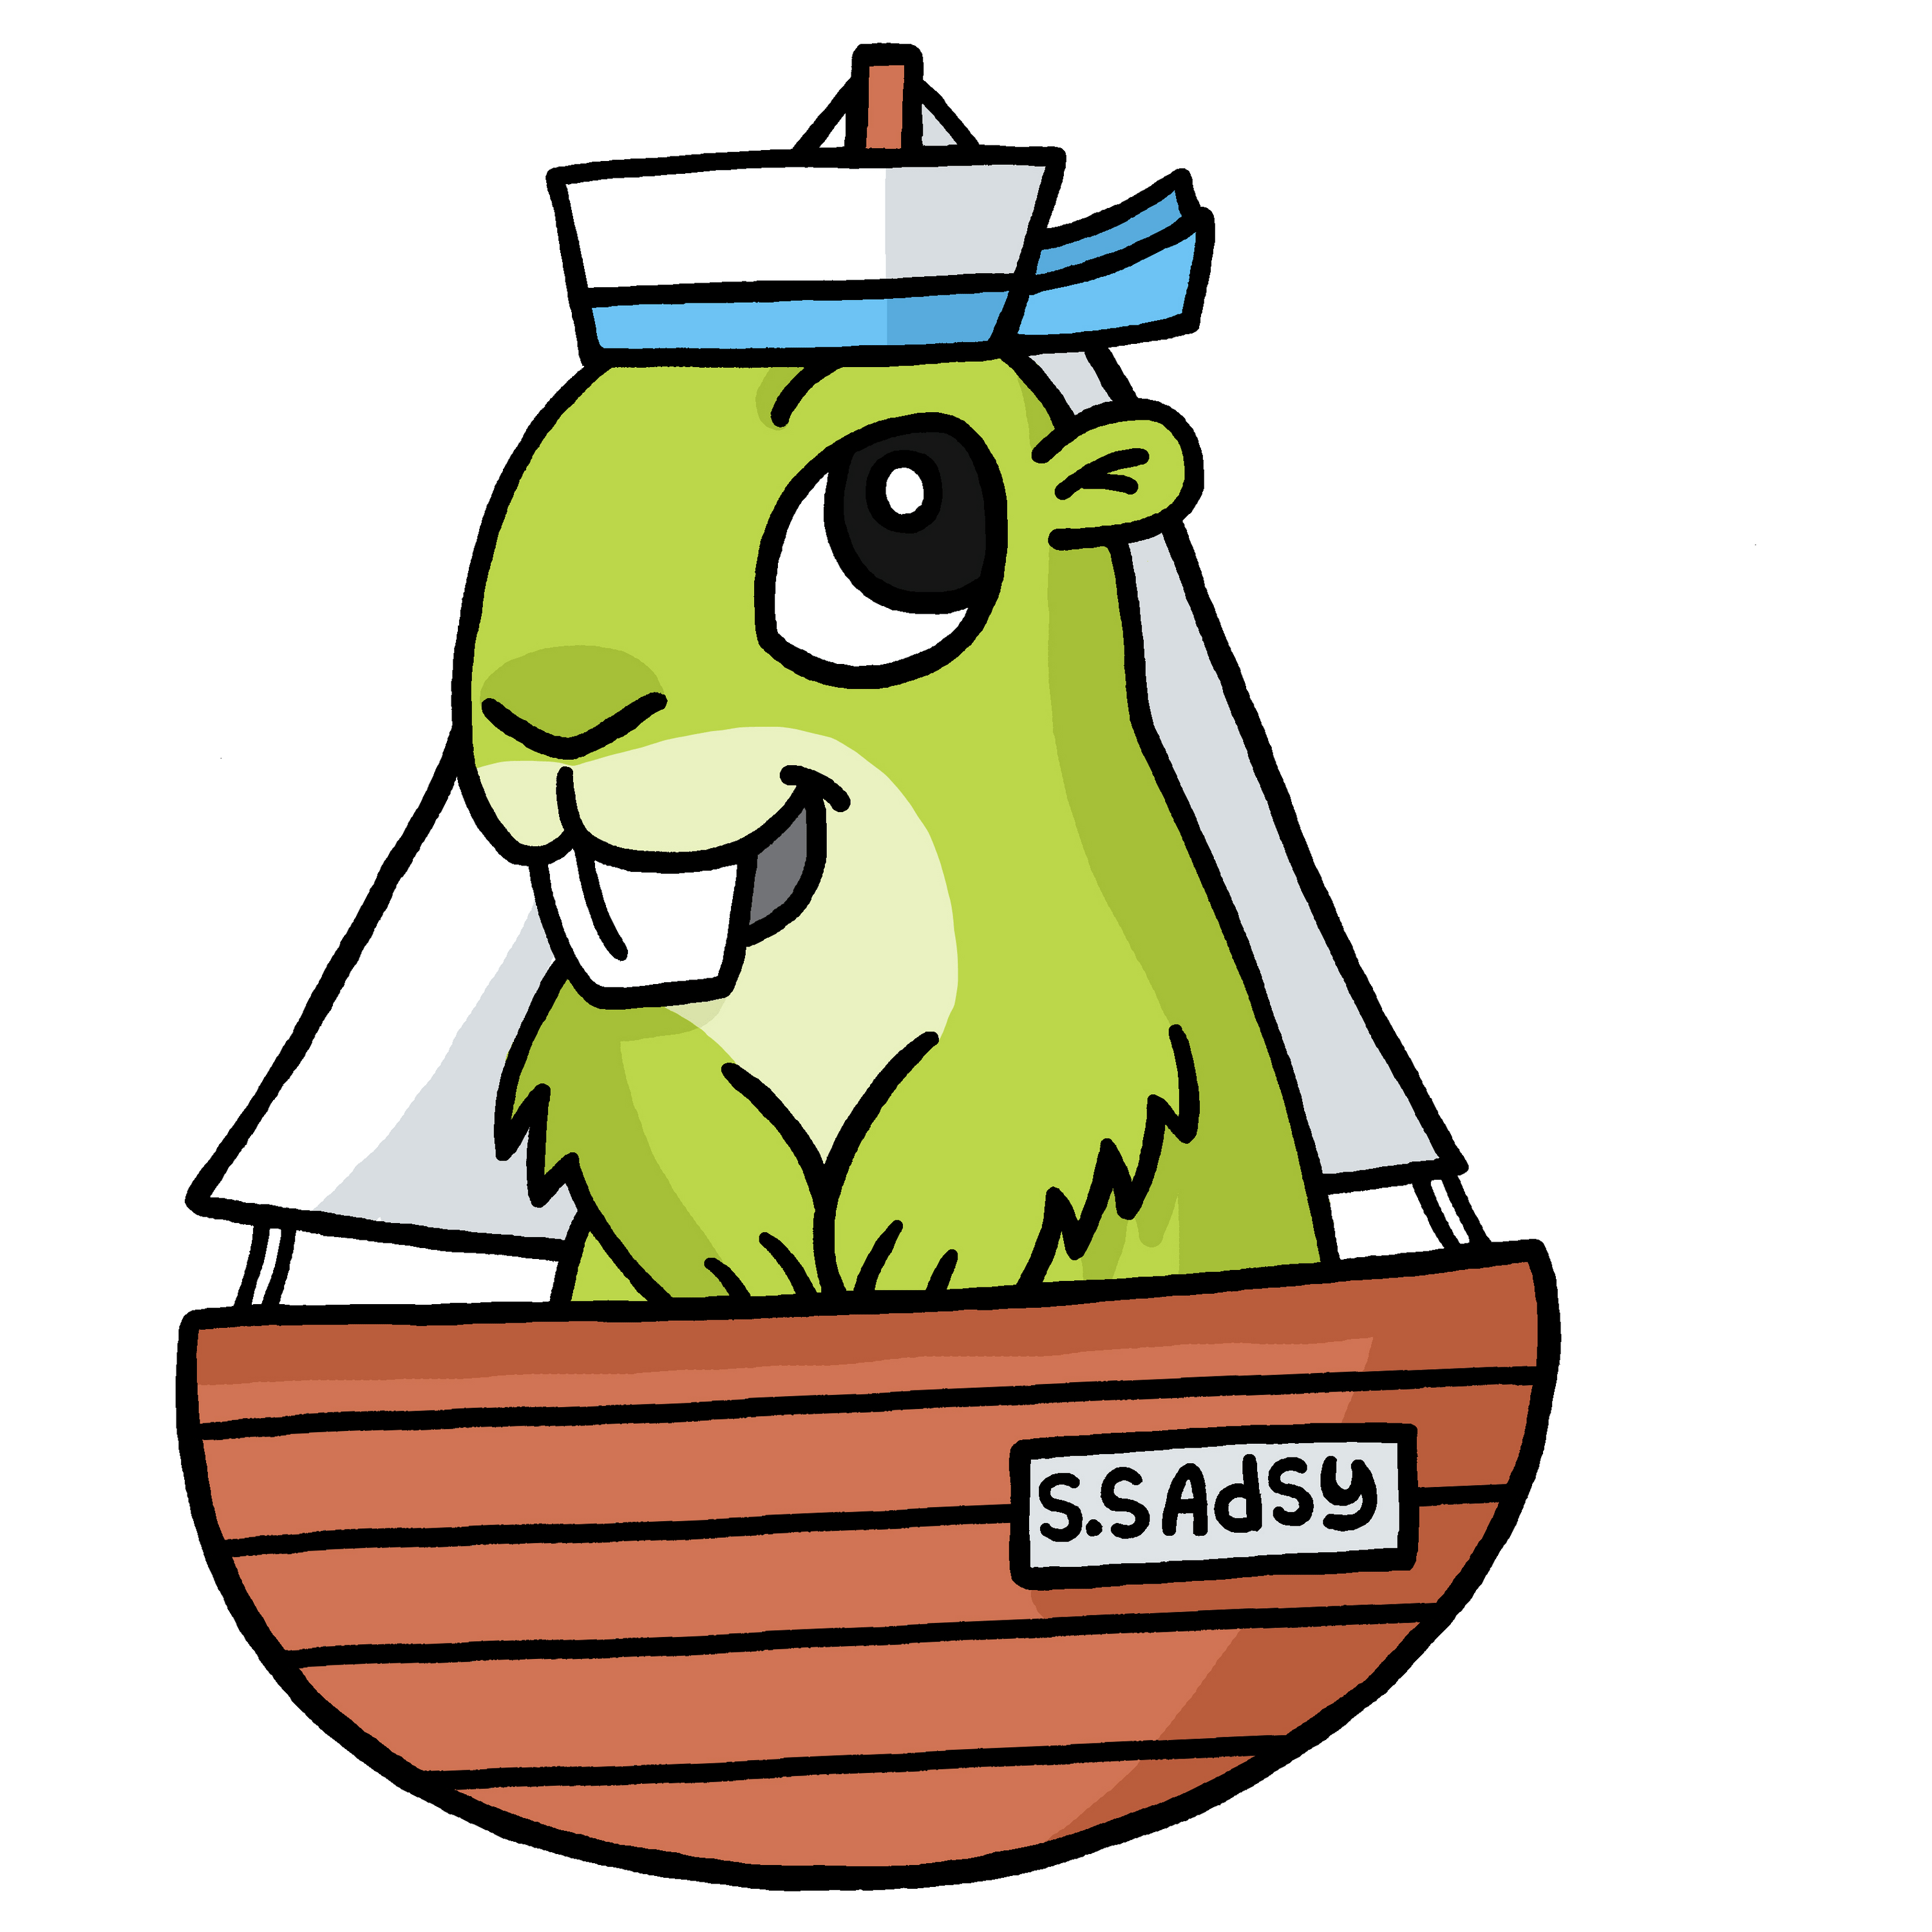 Boating adsy png stickpng. Drivers license clipart transparent